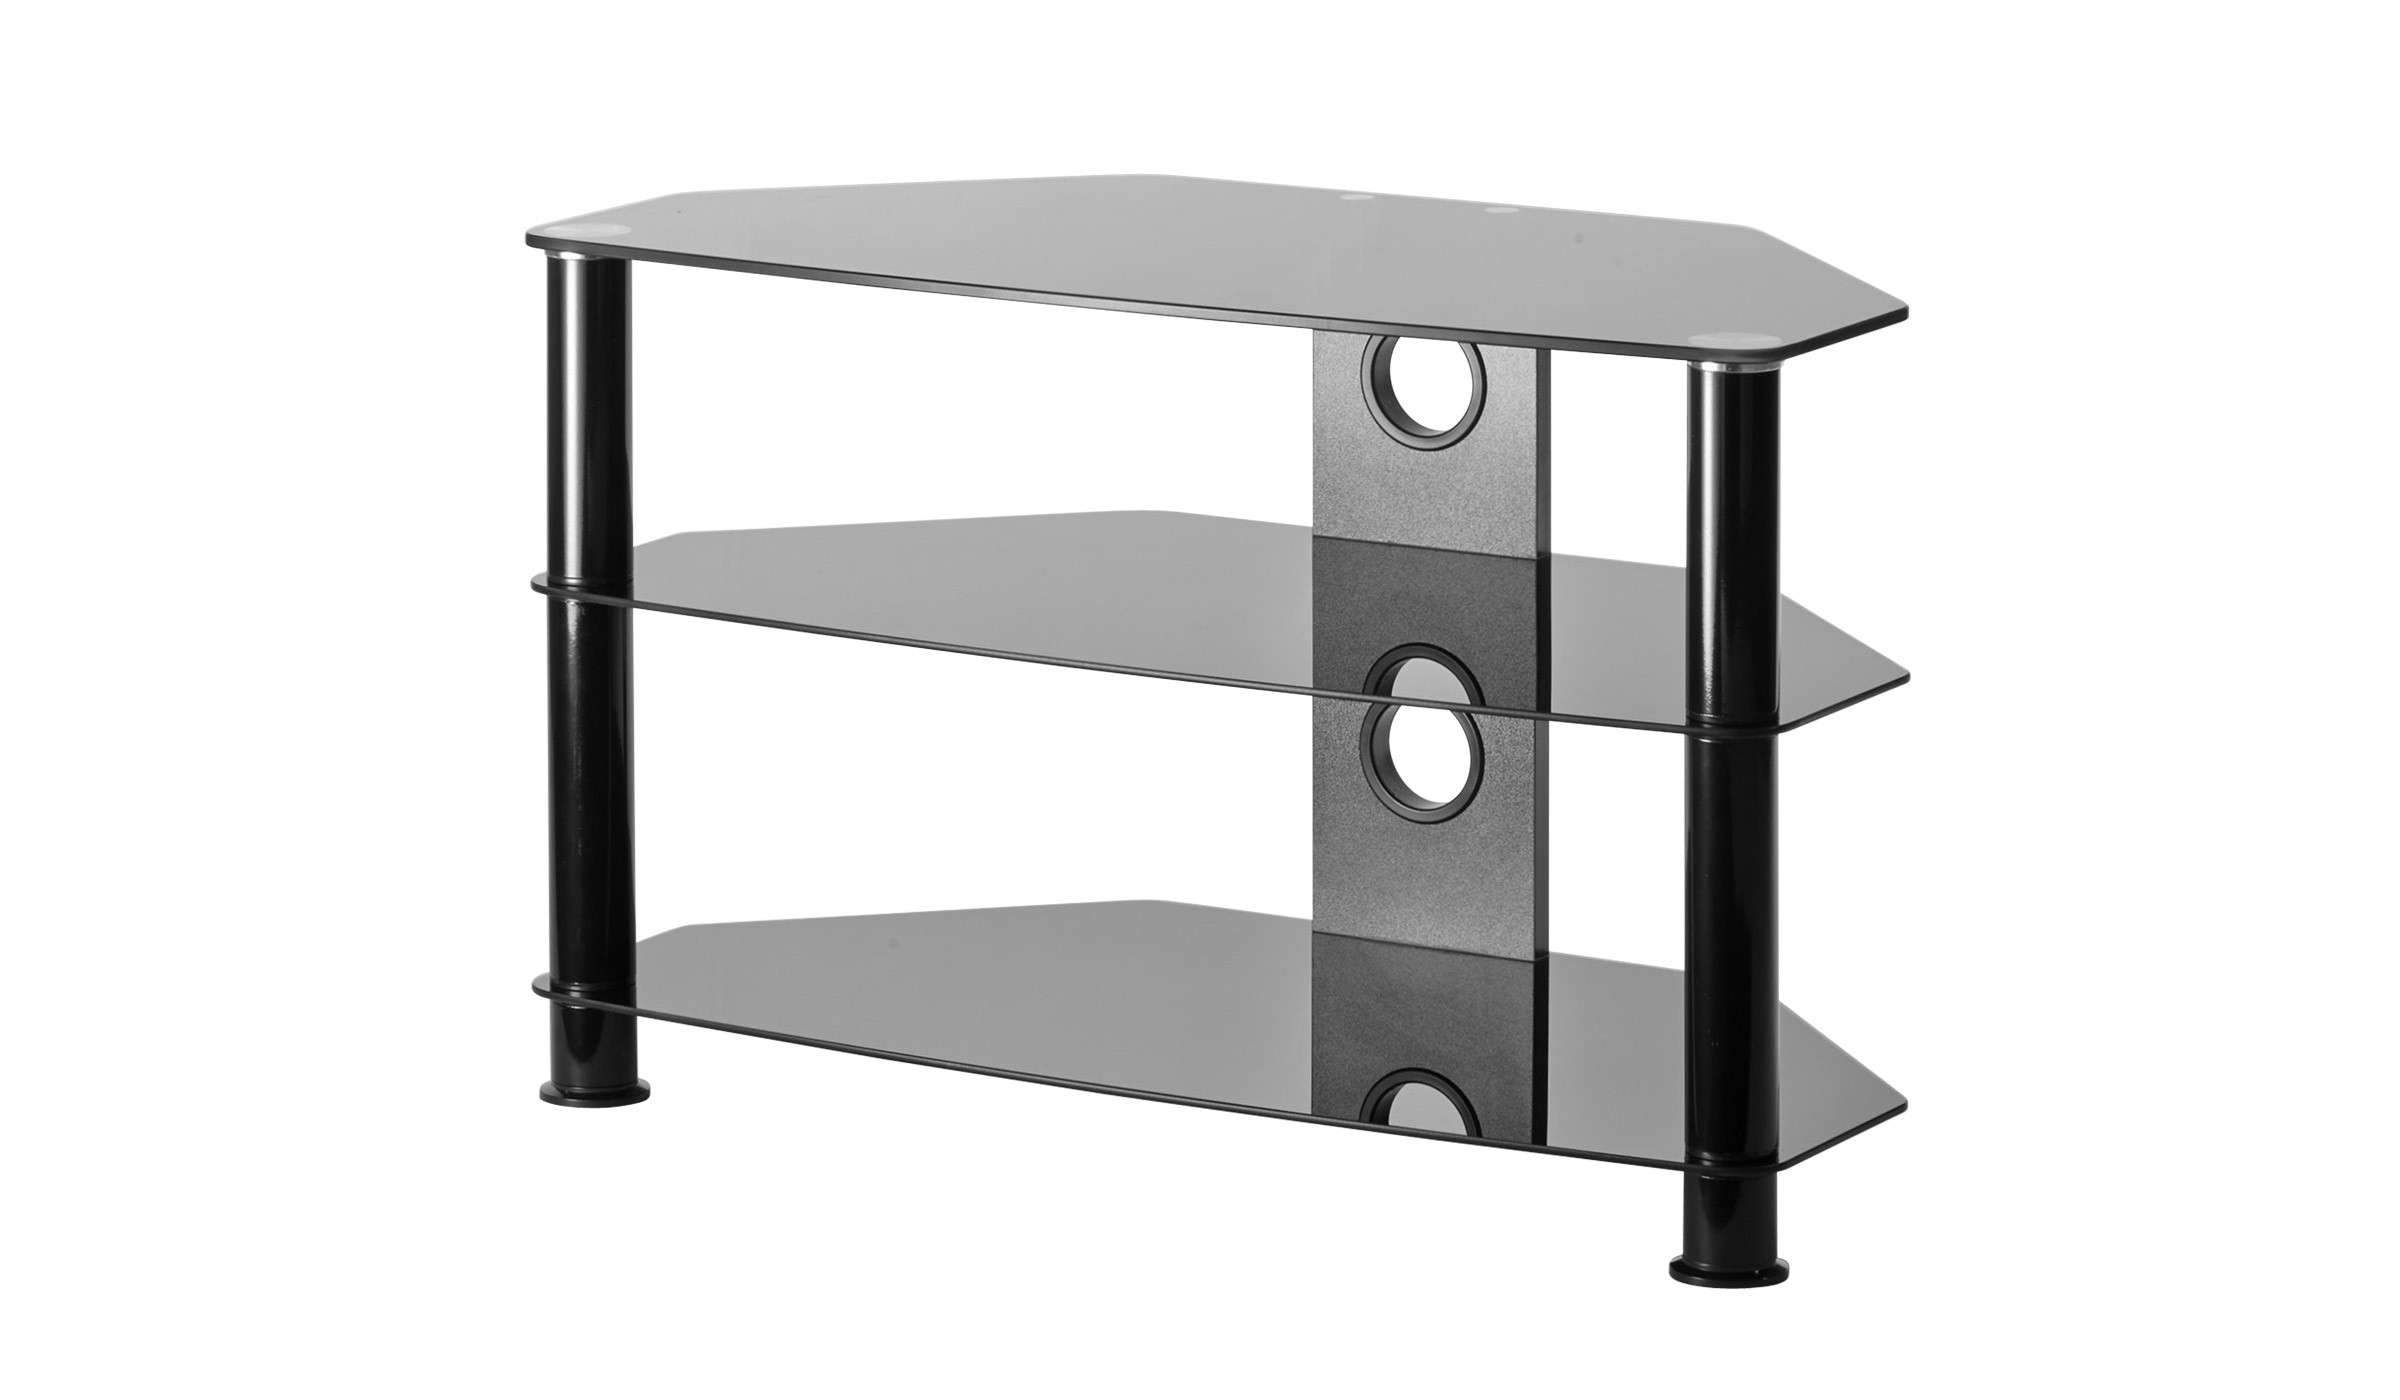 Black Glass Corner Tv Stand Up To 37 Inch Tv | Mmt Db800 Intended For Corner Tv Stands With Bracket (View 16 of 20)